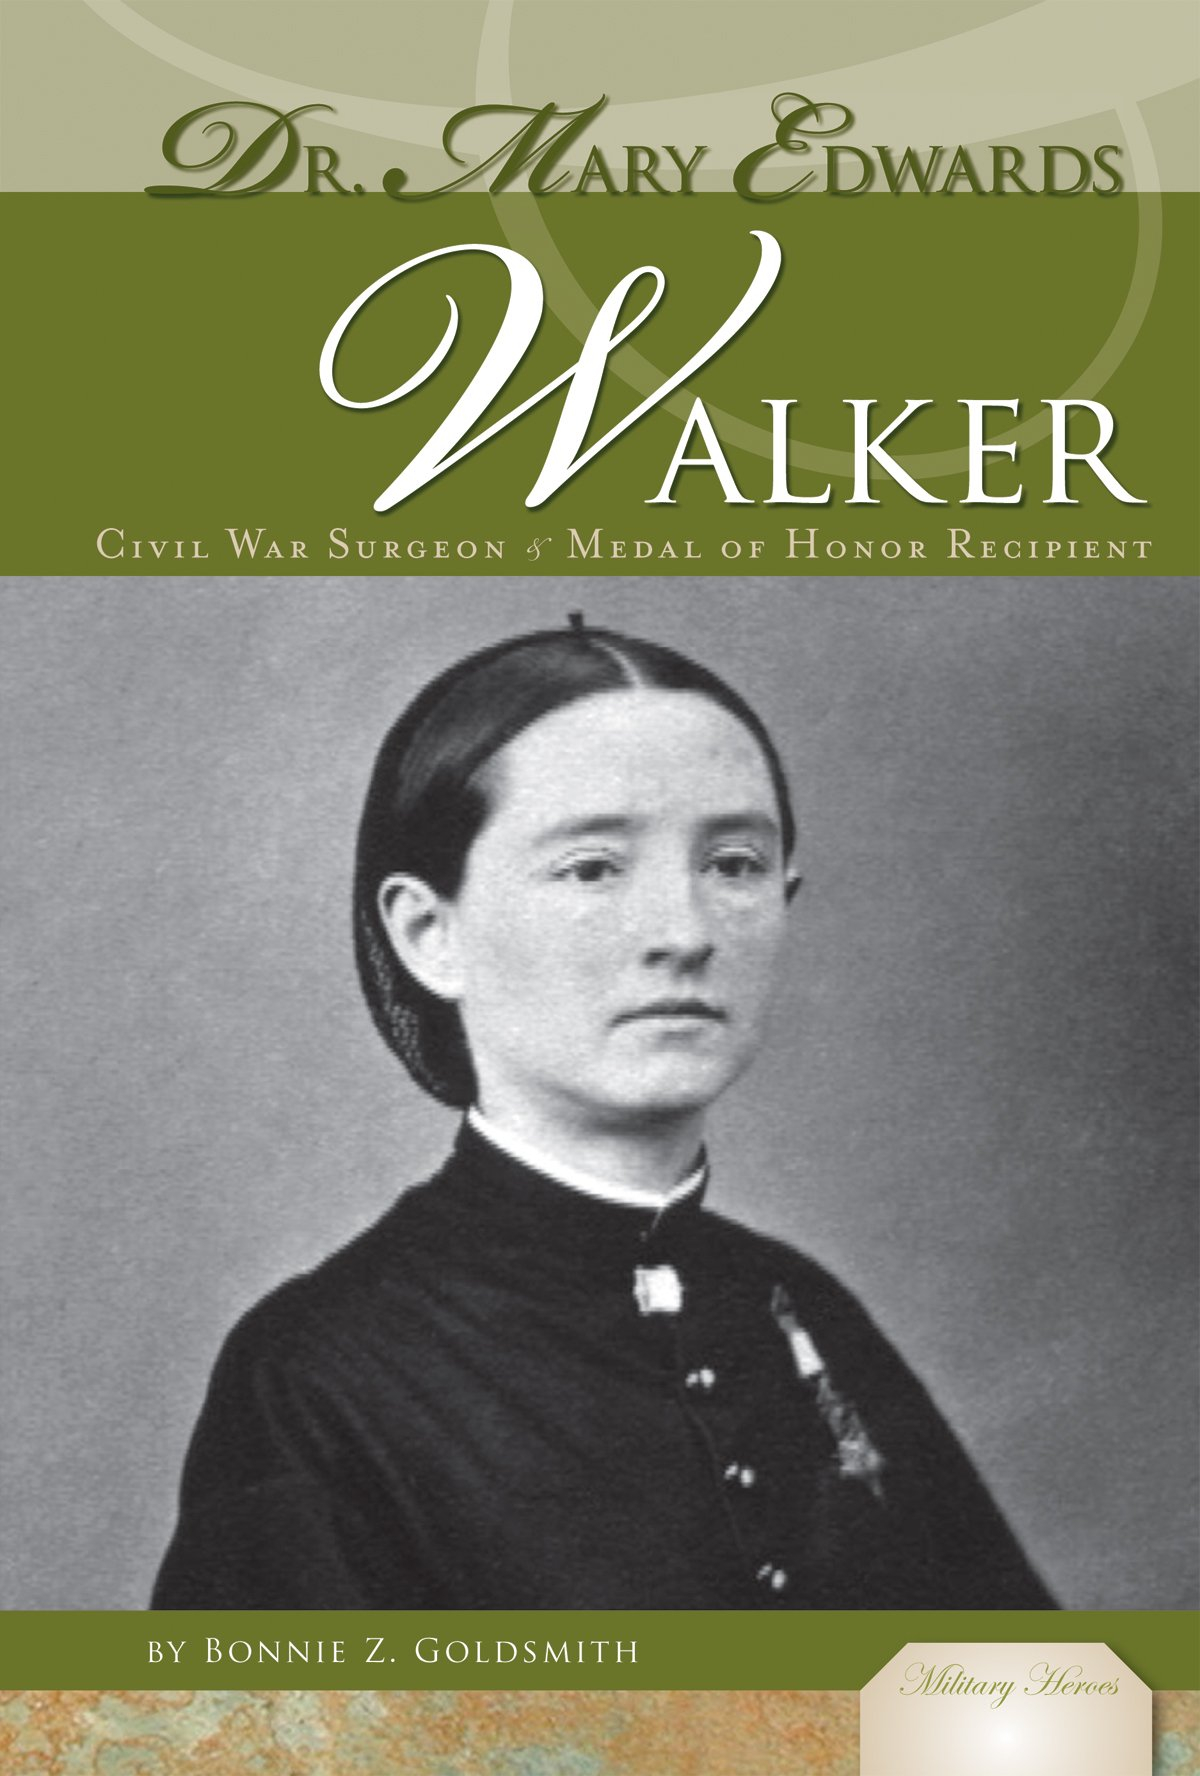 Download Dr. Mary Edwards Walker: Civil War Sugeon & Medal of Honor Recipient: Civil War Surgeon & Medal of Honor Recipient (Military Heroes) ebook